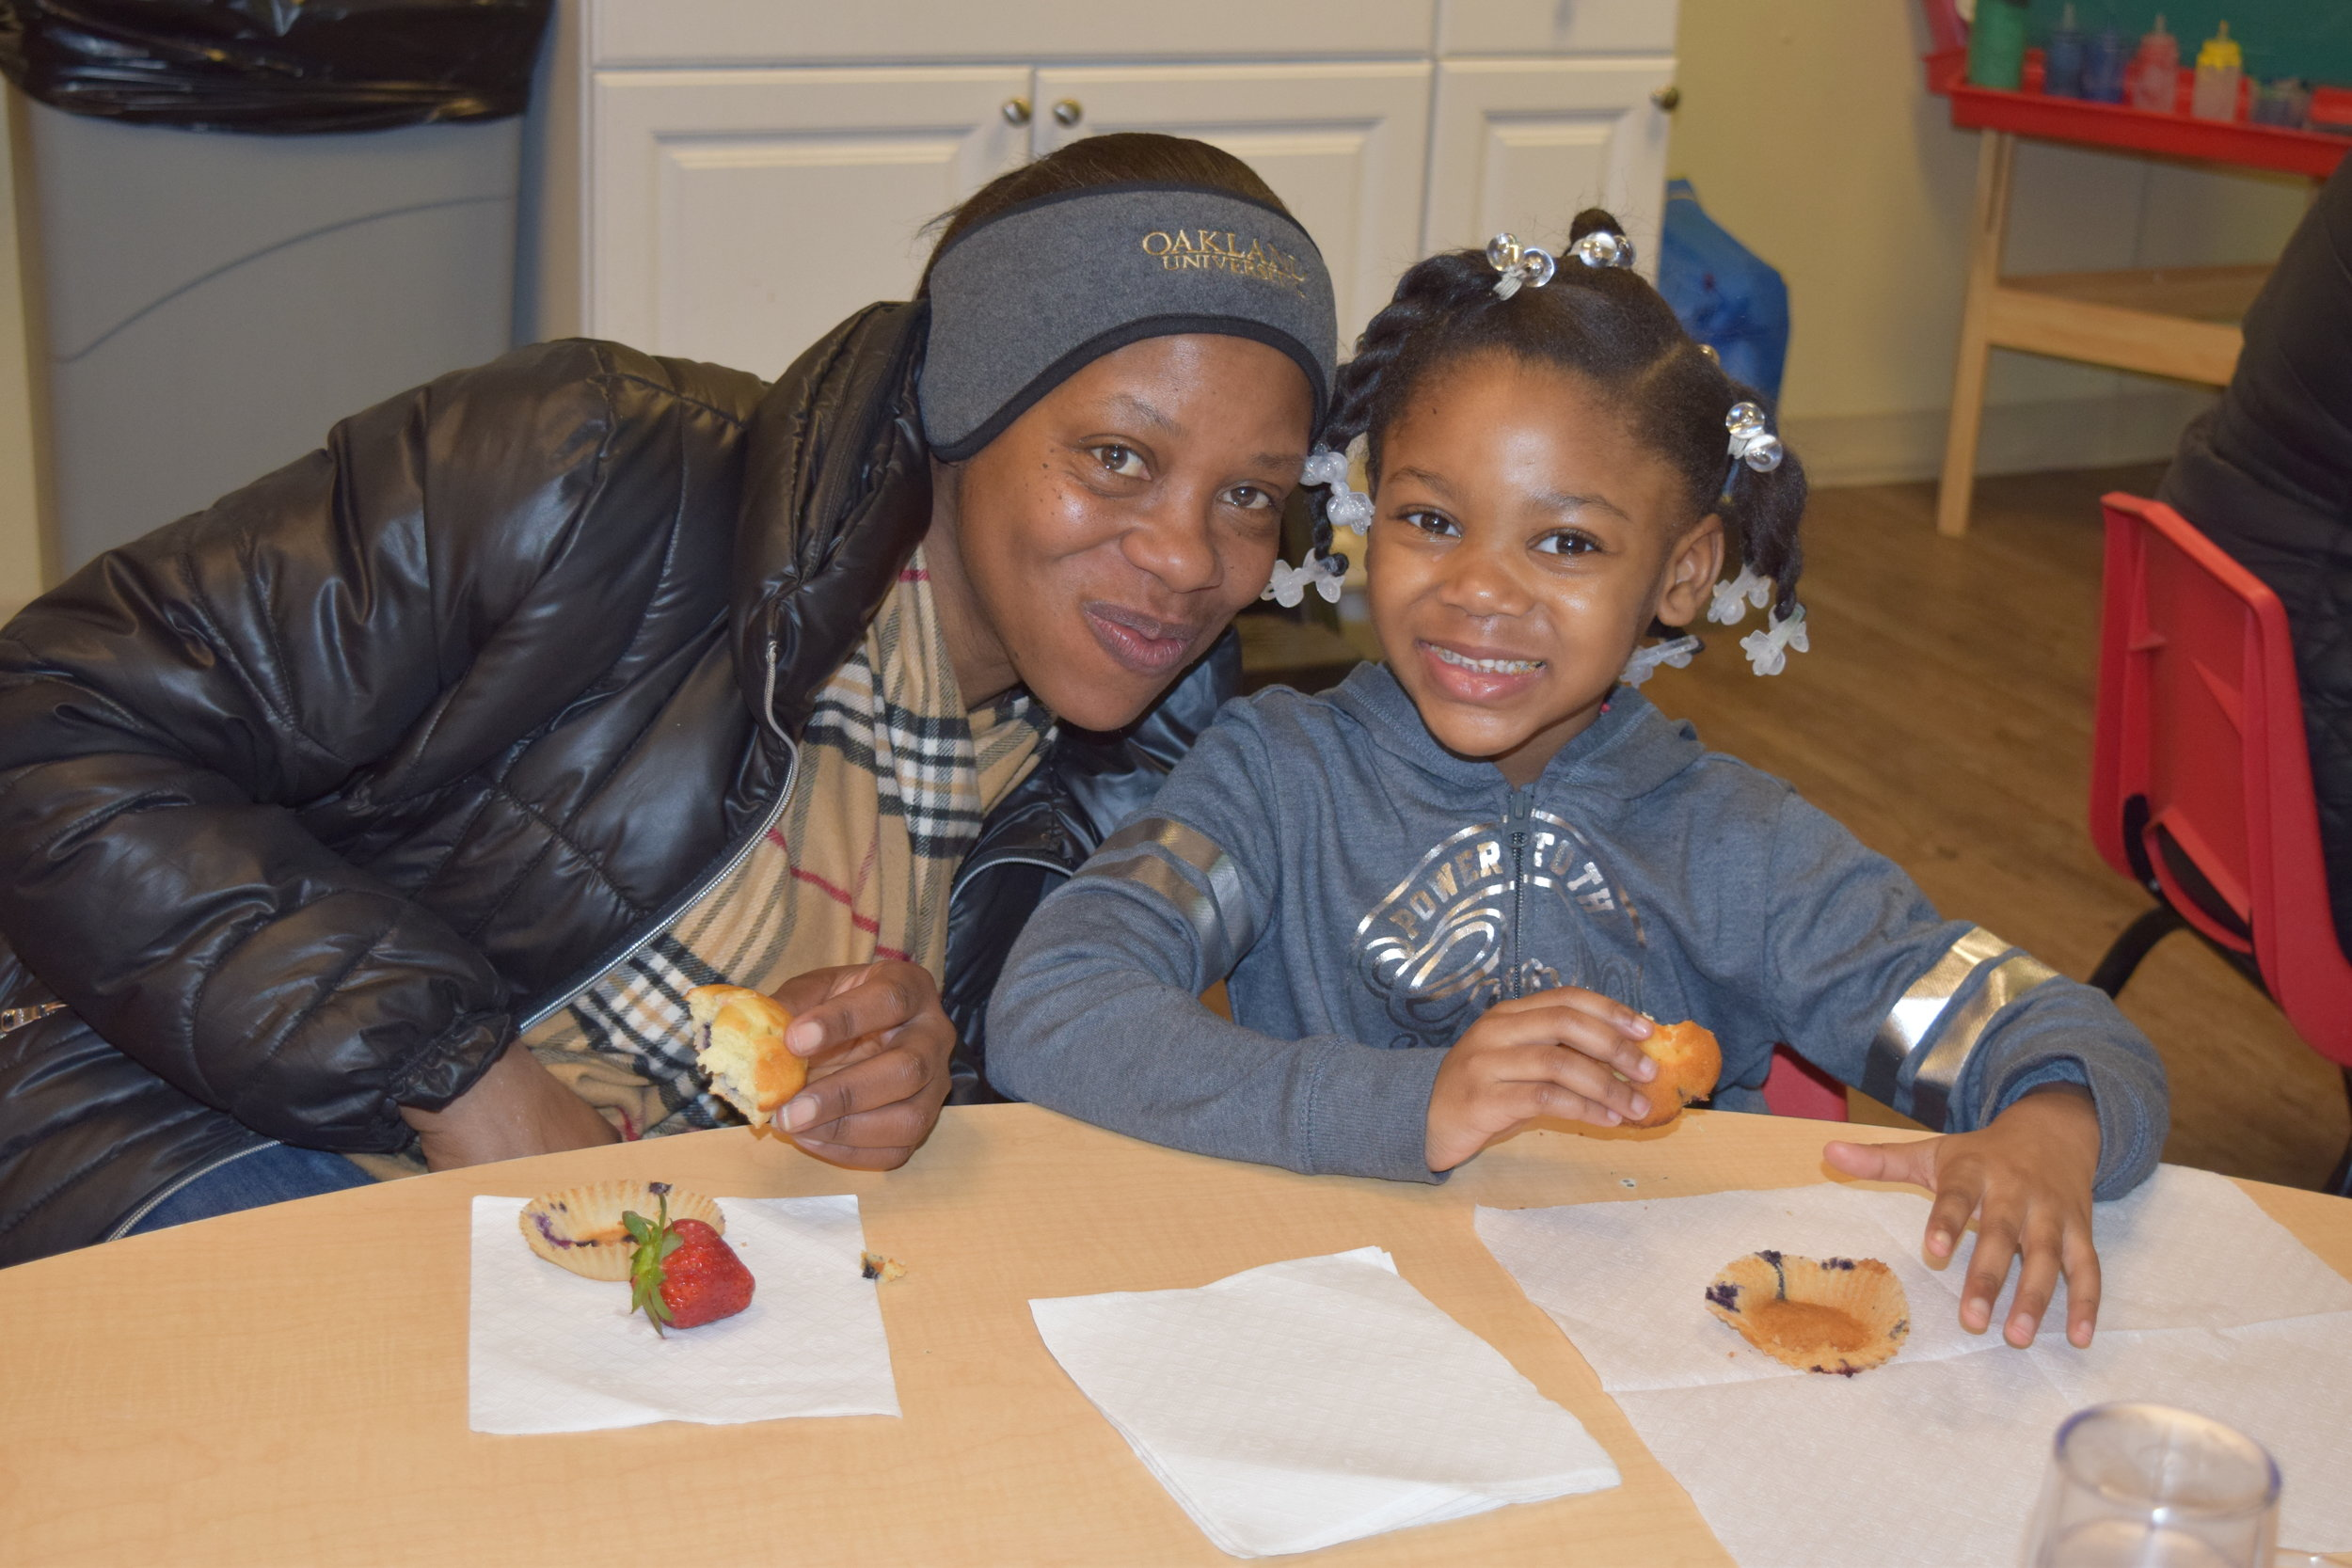 Jamyia Sherrell and her daughter, Journey, enjoy spending time together during Muffins with Mom at the Children's Learning Center in Pontiac.